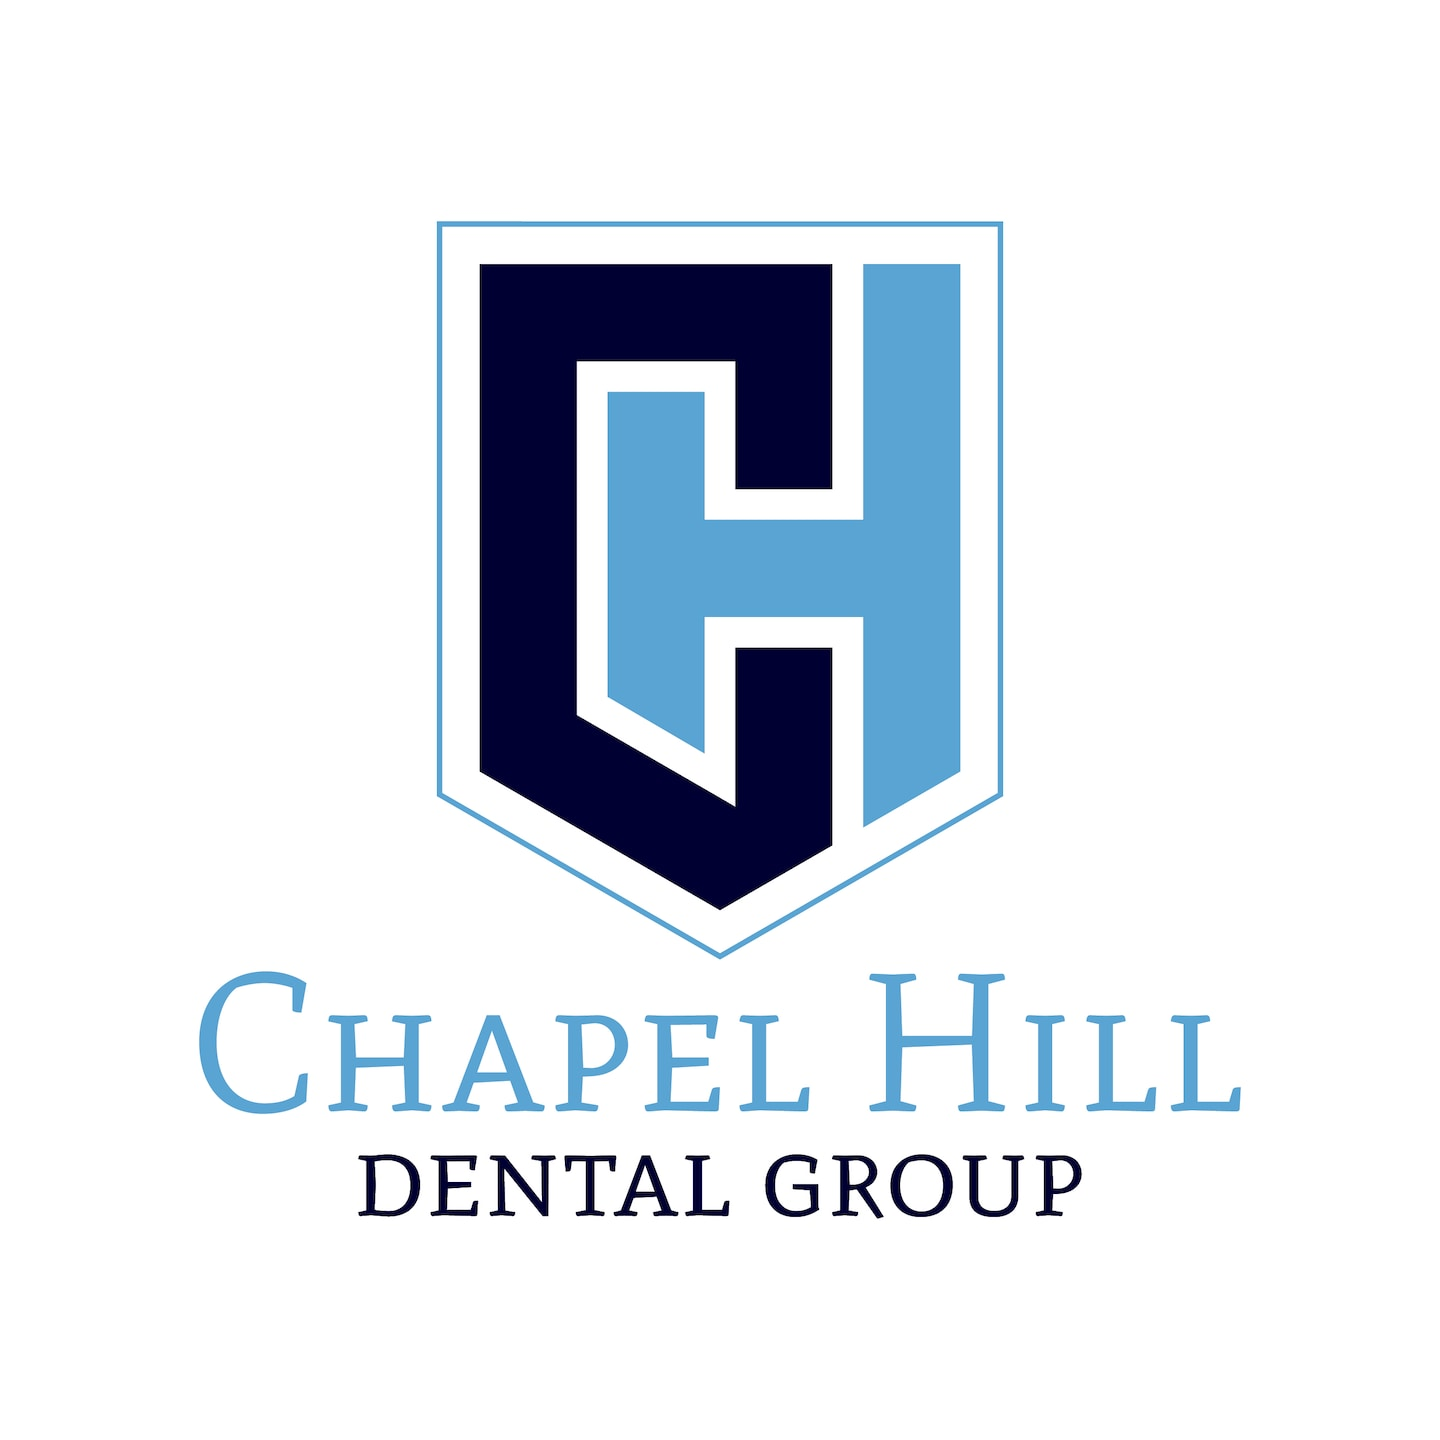 Chapel Hill Dental Group  logo